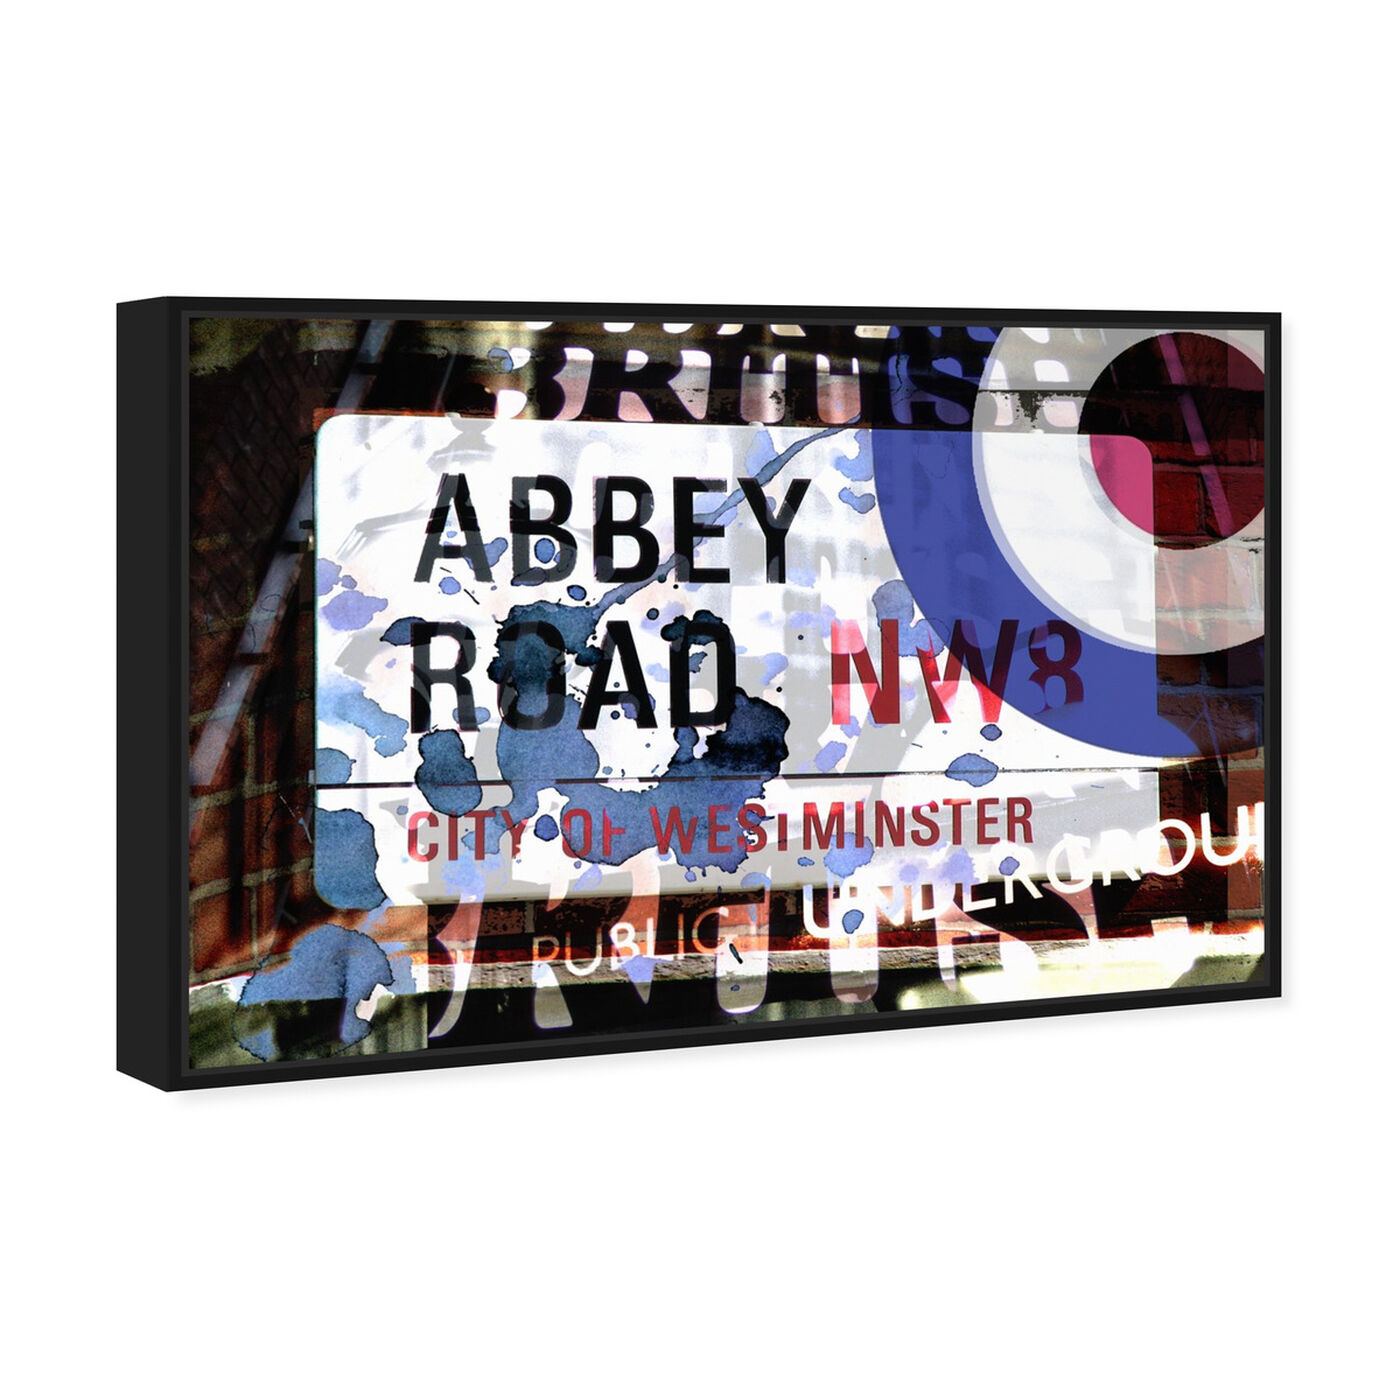 Angled view of Abbey Road featuring advertising and posters art.